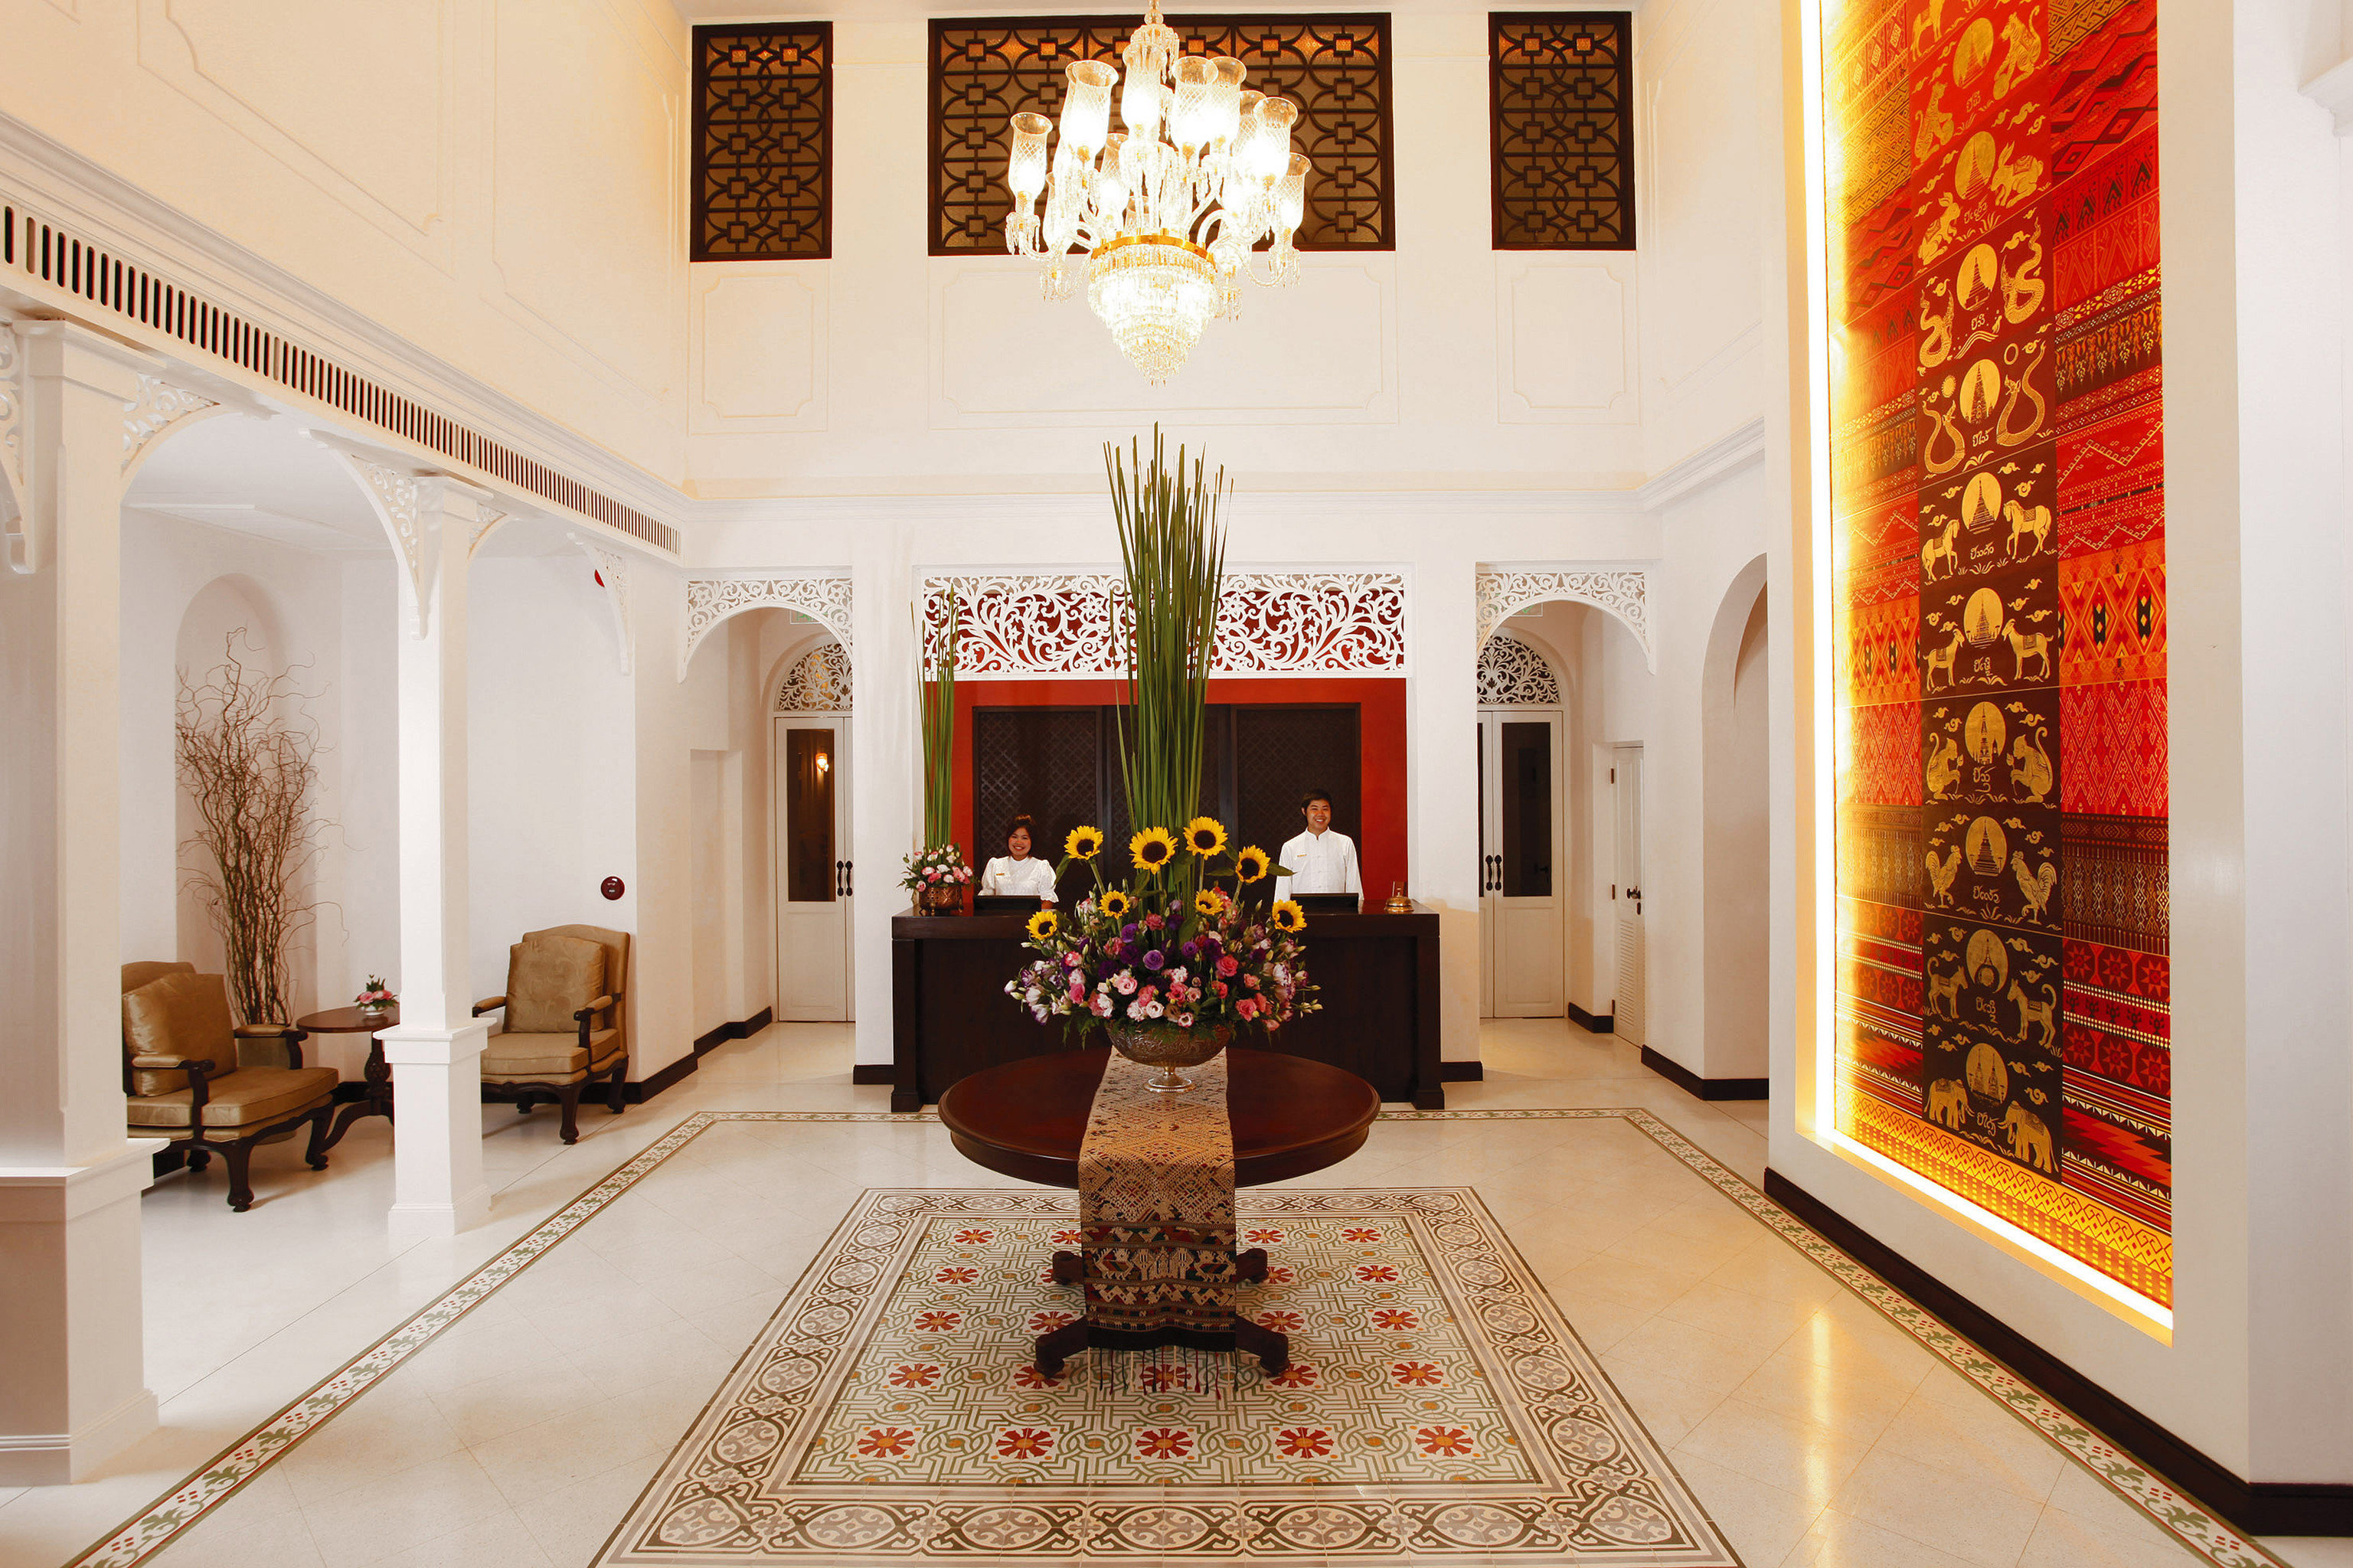 Elegant Jungle Lobby Lounge hall home living room mansion palace tourist attraction art gallery